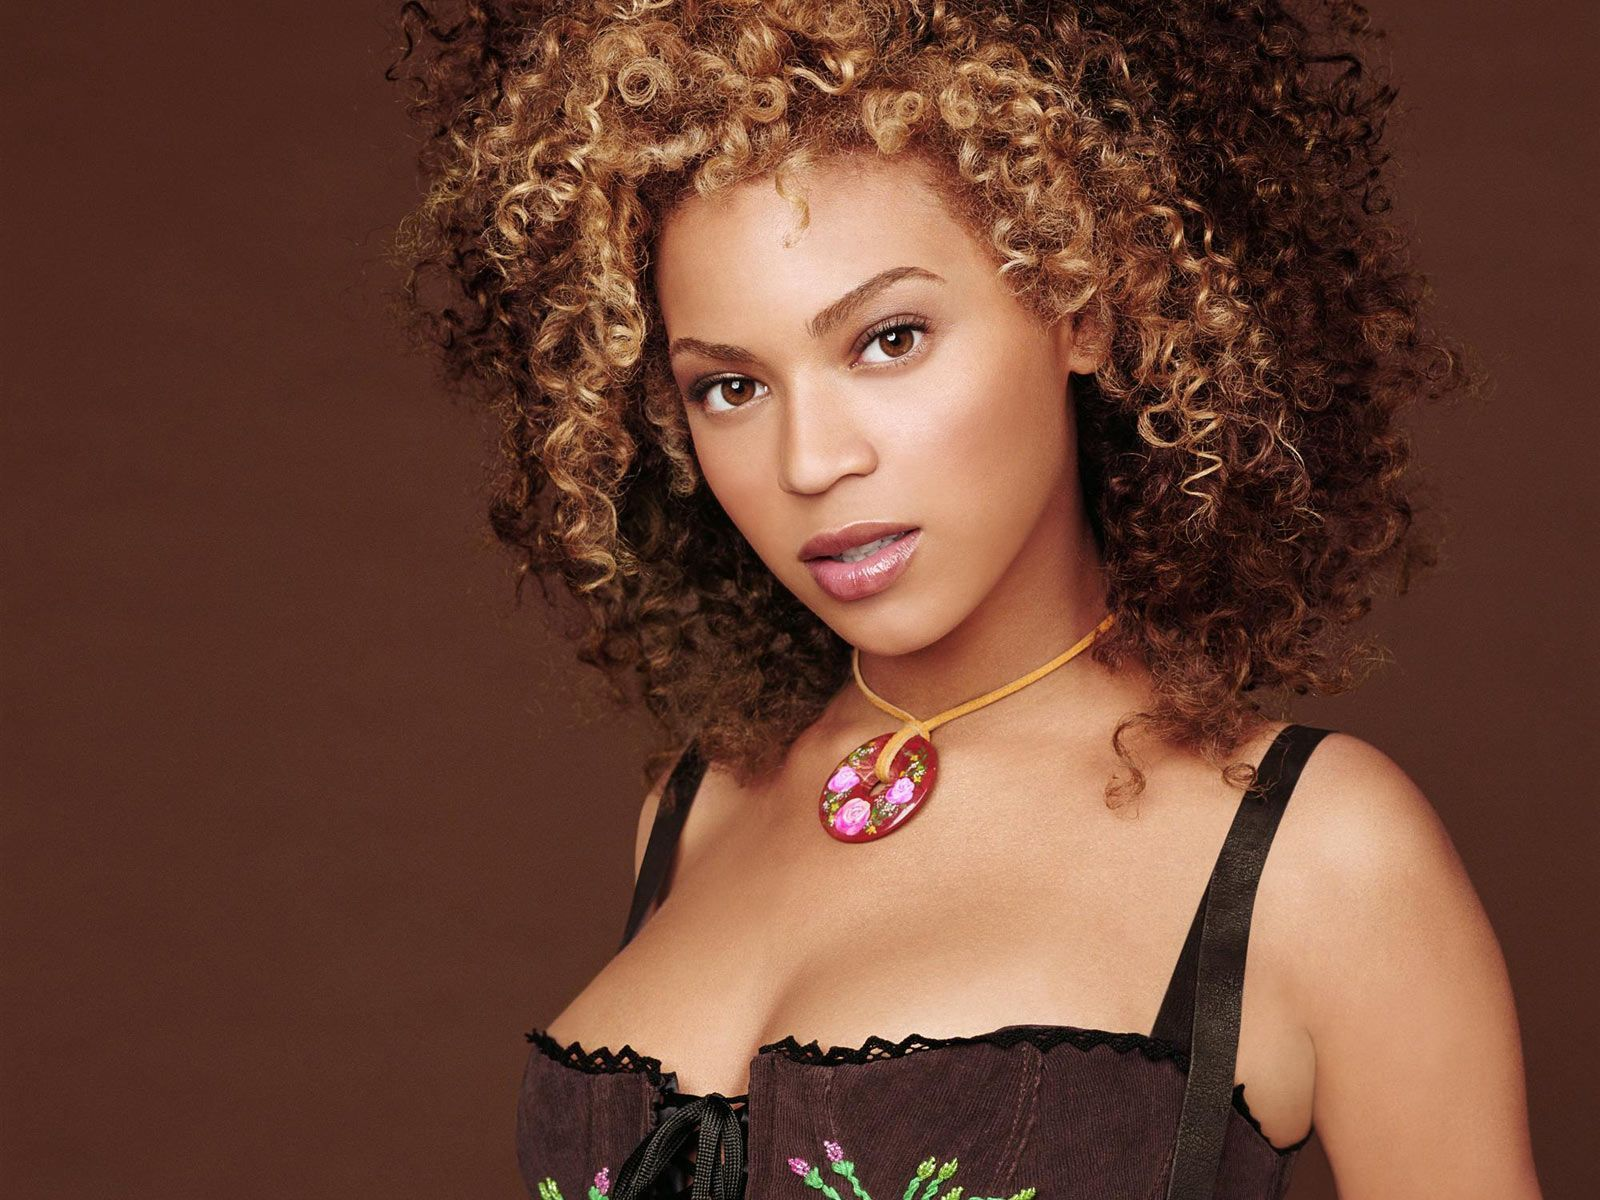 shahd beyonce wallpapers beyonce wallpaper 2622615